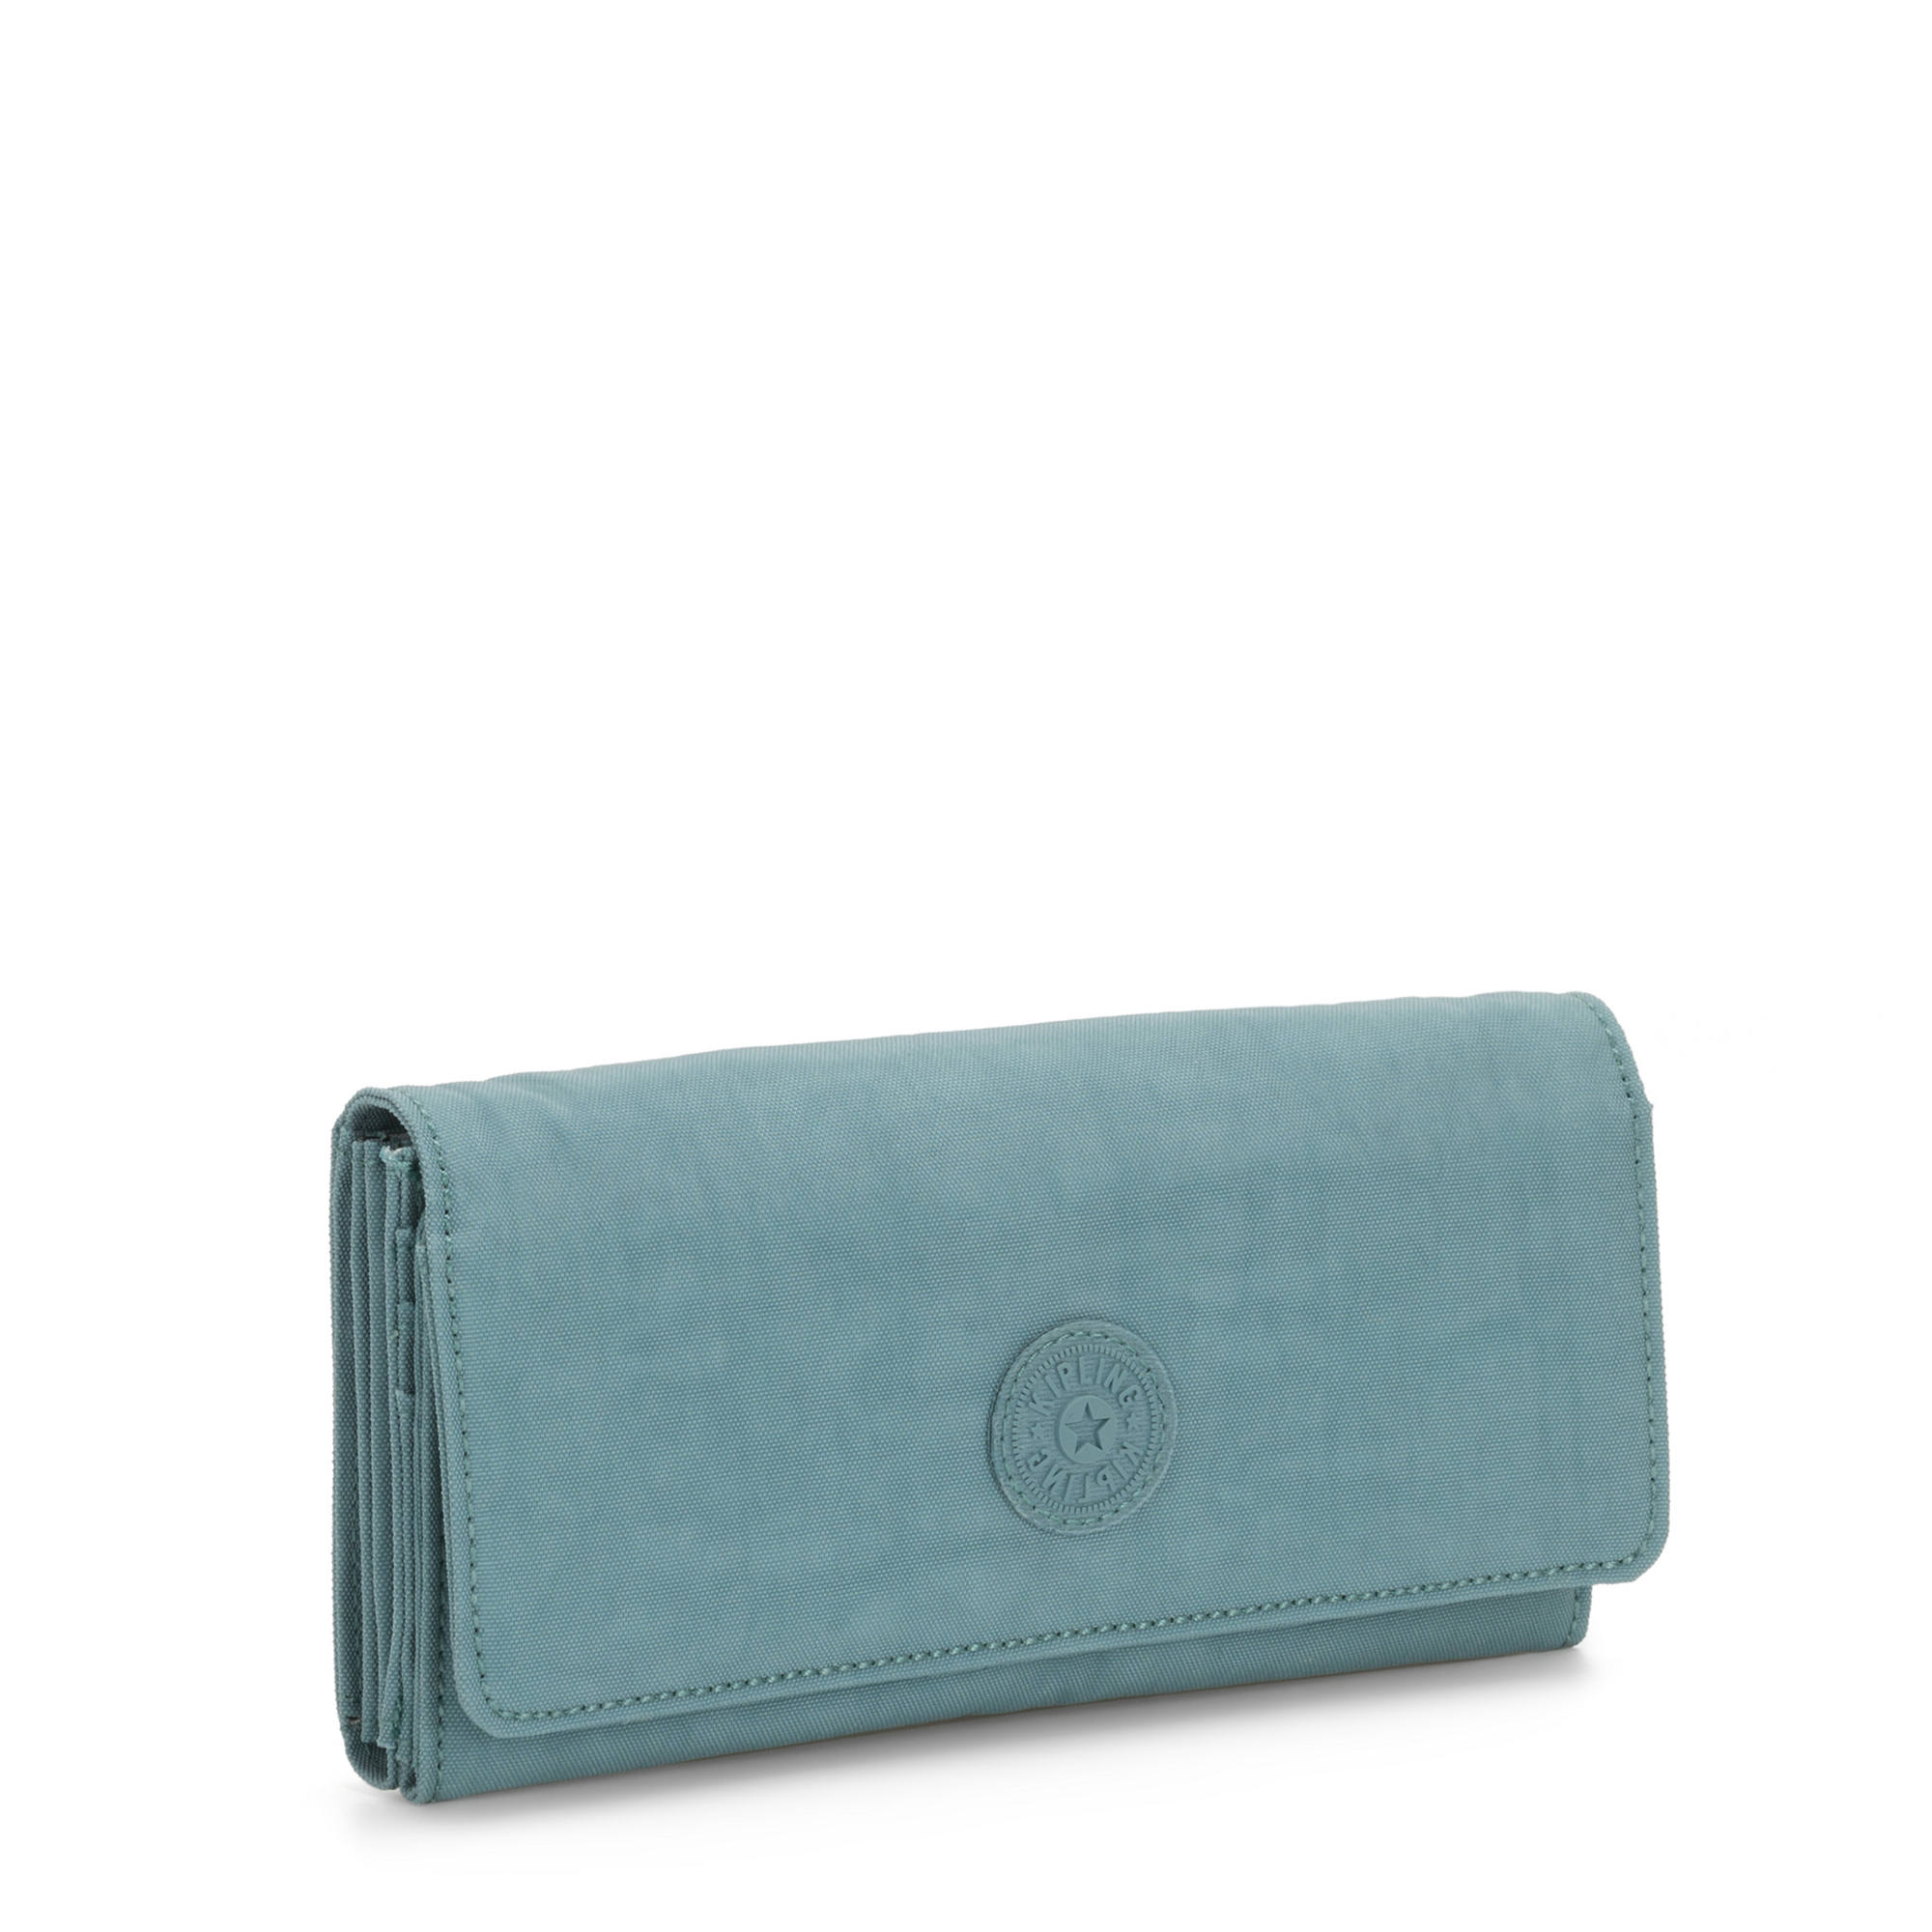 Kipling-New-Teddi-Printed-Snap-Wallet thumbnail 5